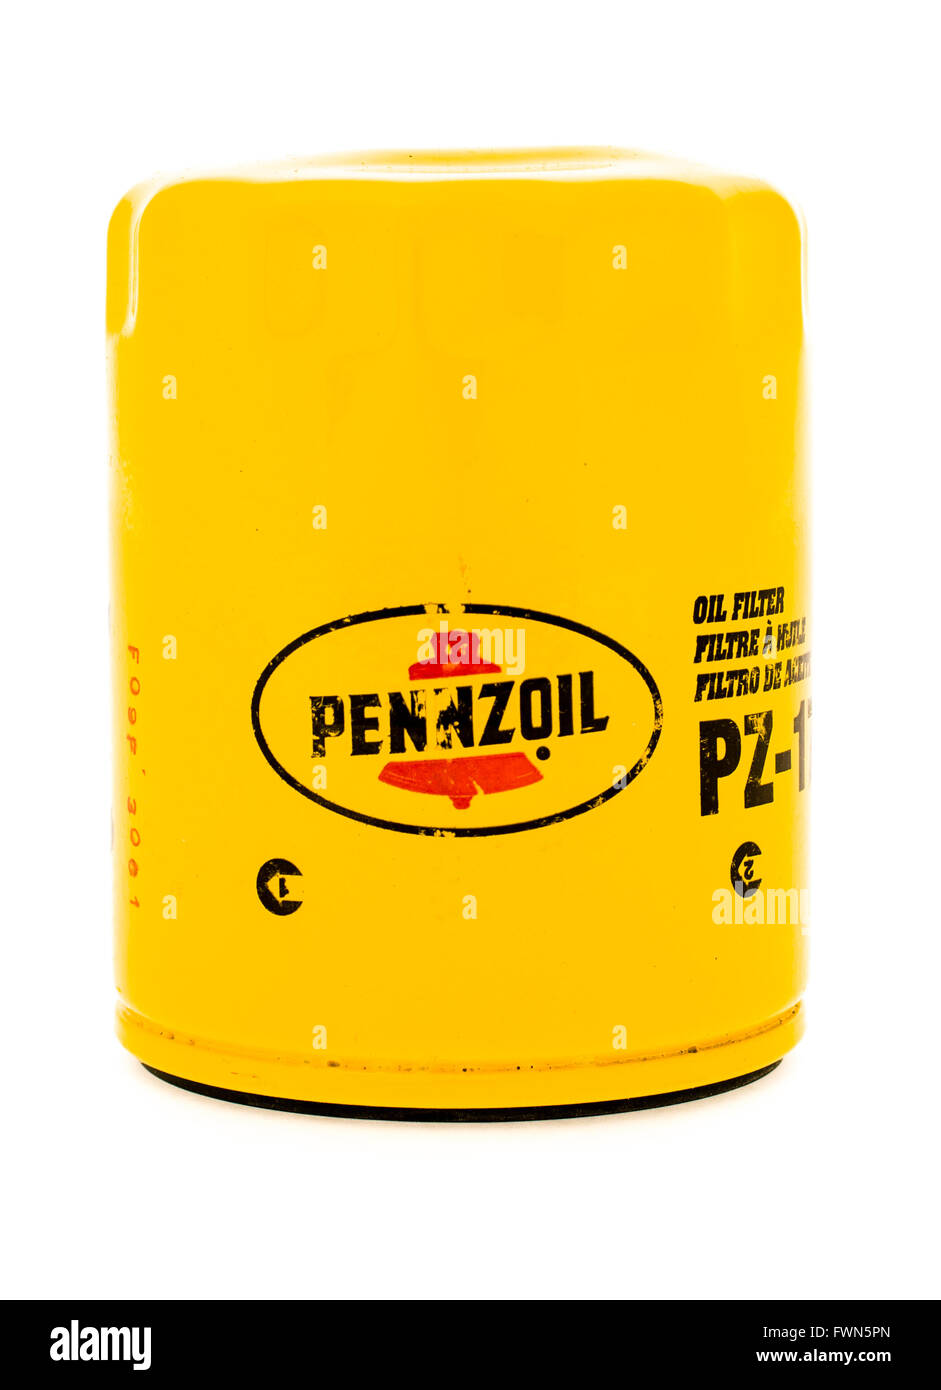 Winneconne, WI - 23 August 2015:  Pennzoil oil filter used on vehicles. Stock Photo